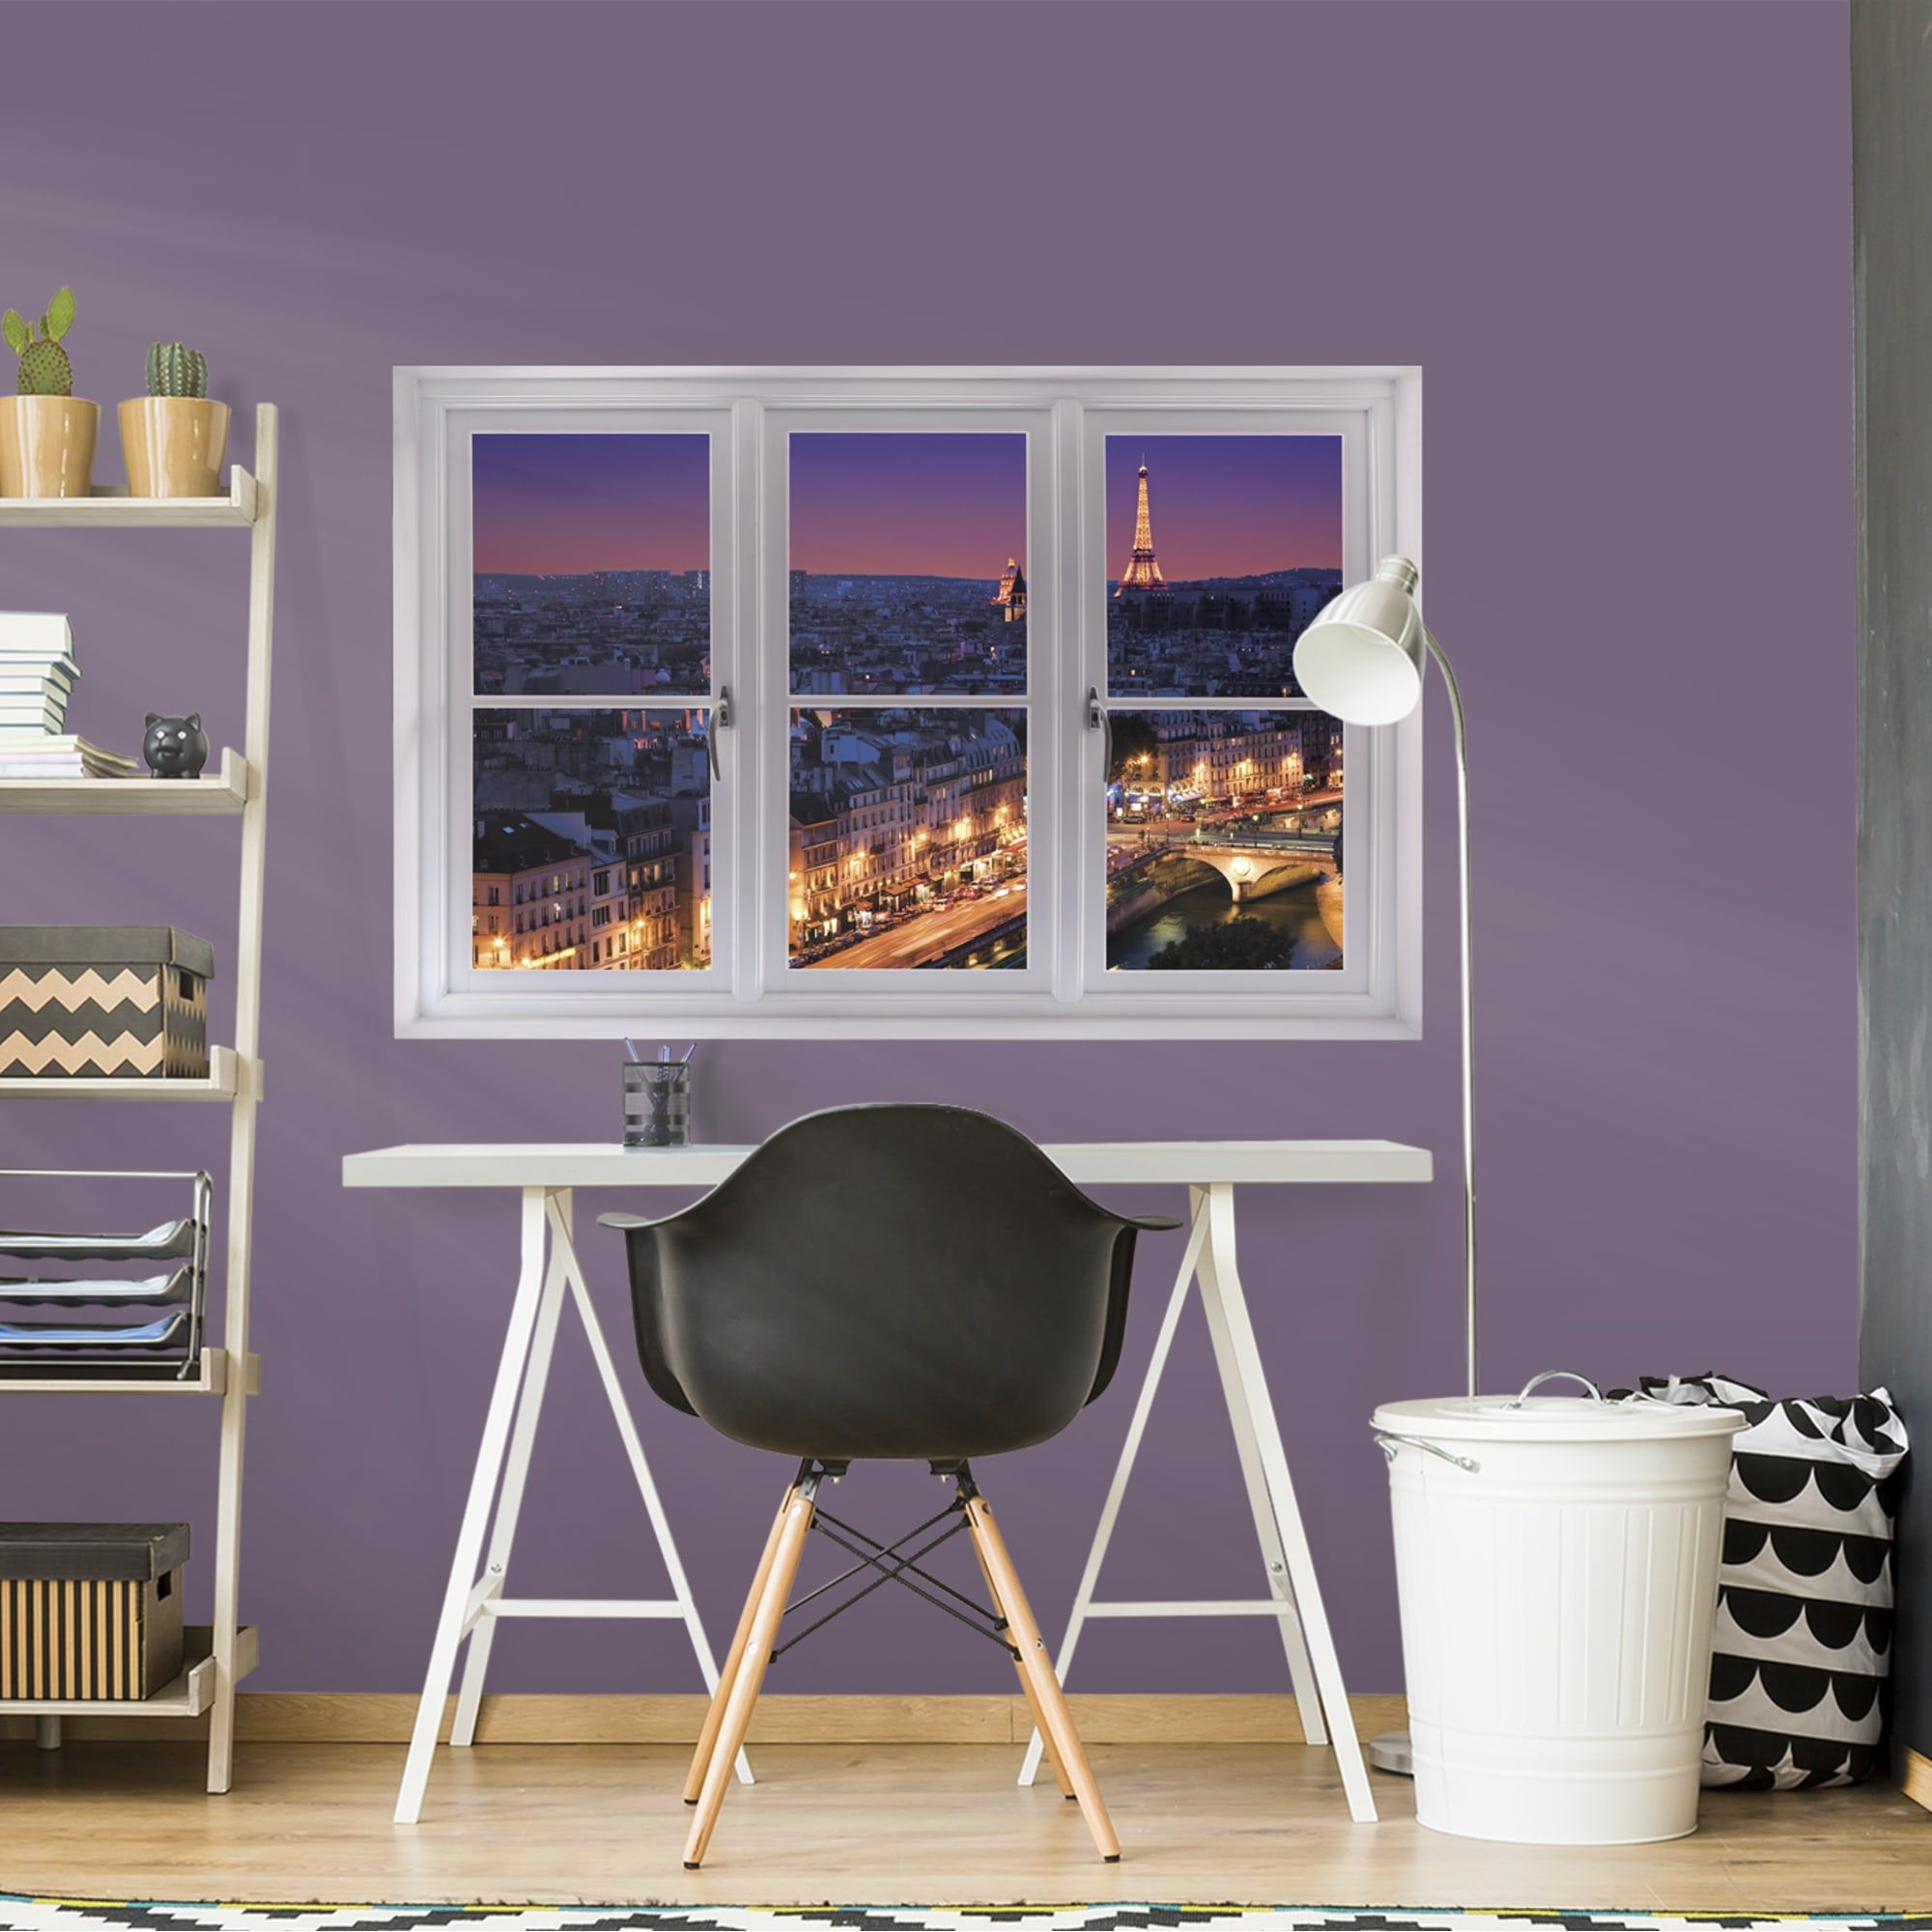 Instant Window Paris Skyline At Night Giant Removable Wall Graphic Wall Decal Shop Fathead For Faux Window Wall Graphics Wall Vinyl Decor Removable Wall